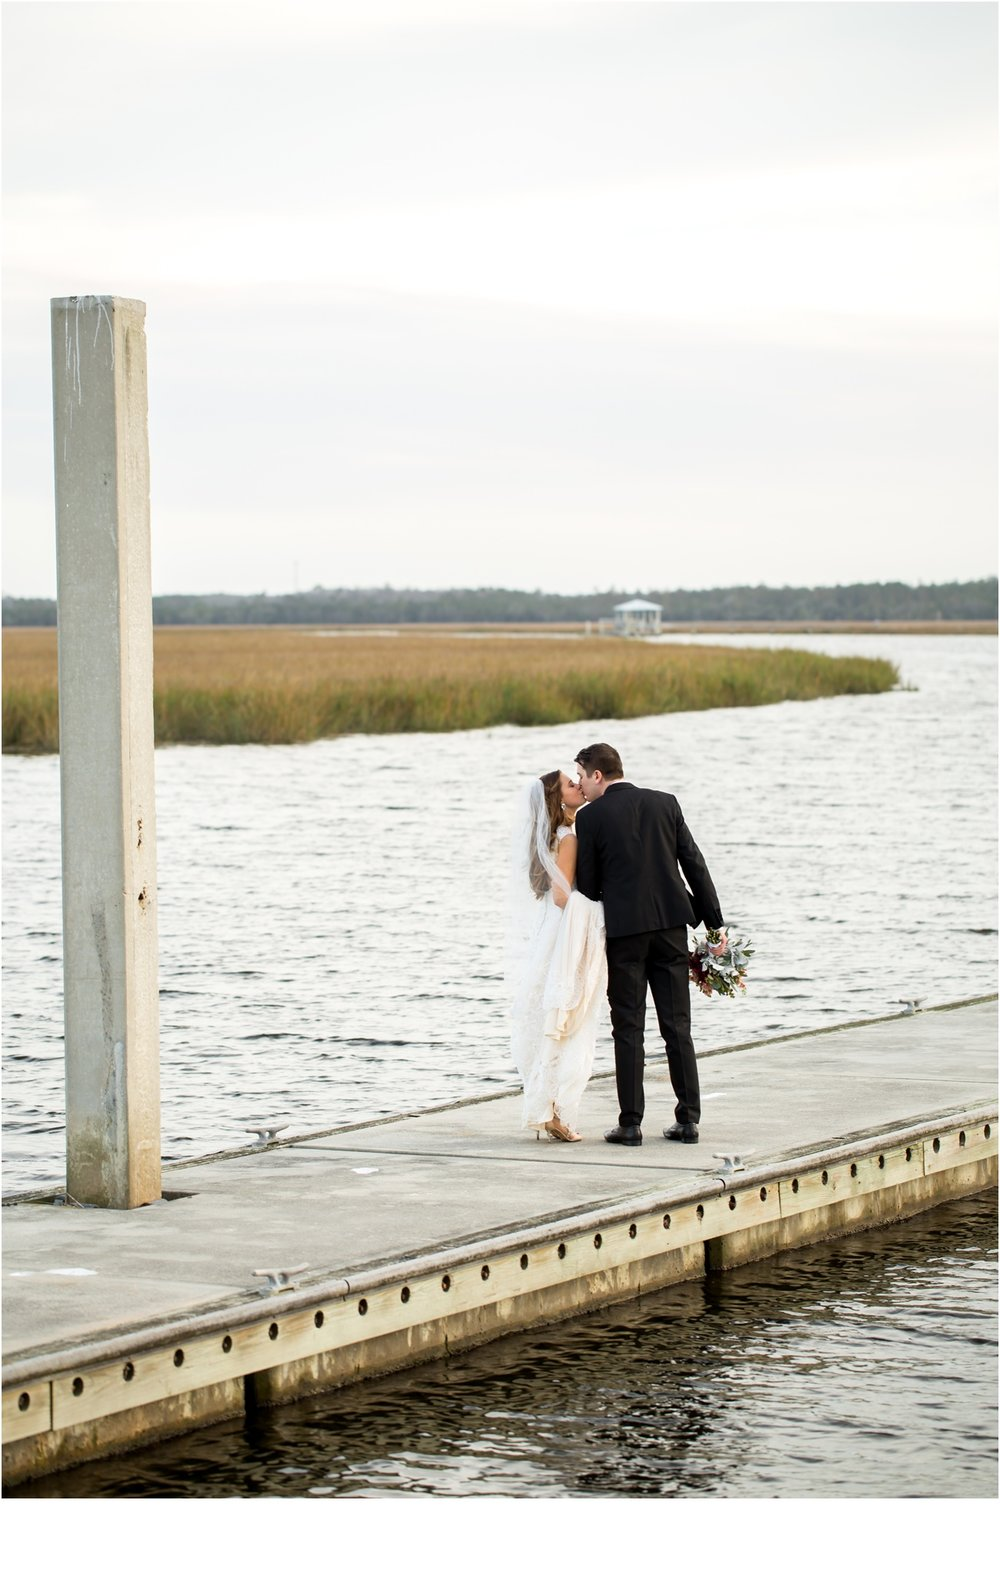 Rainey_Gregg_Photography_St._Simons_Island_Georgia_California_Wedding_Portrait_Photography_0871.jpg